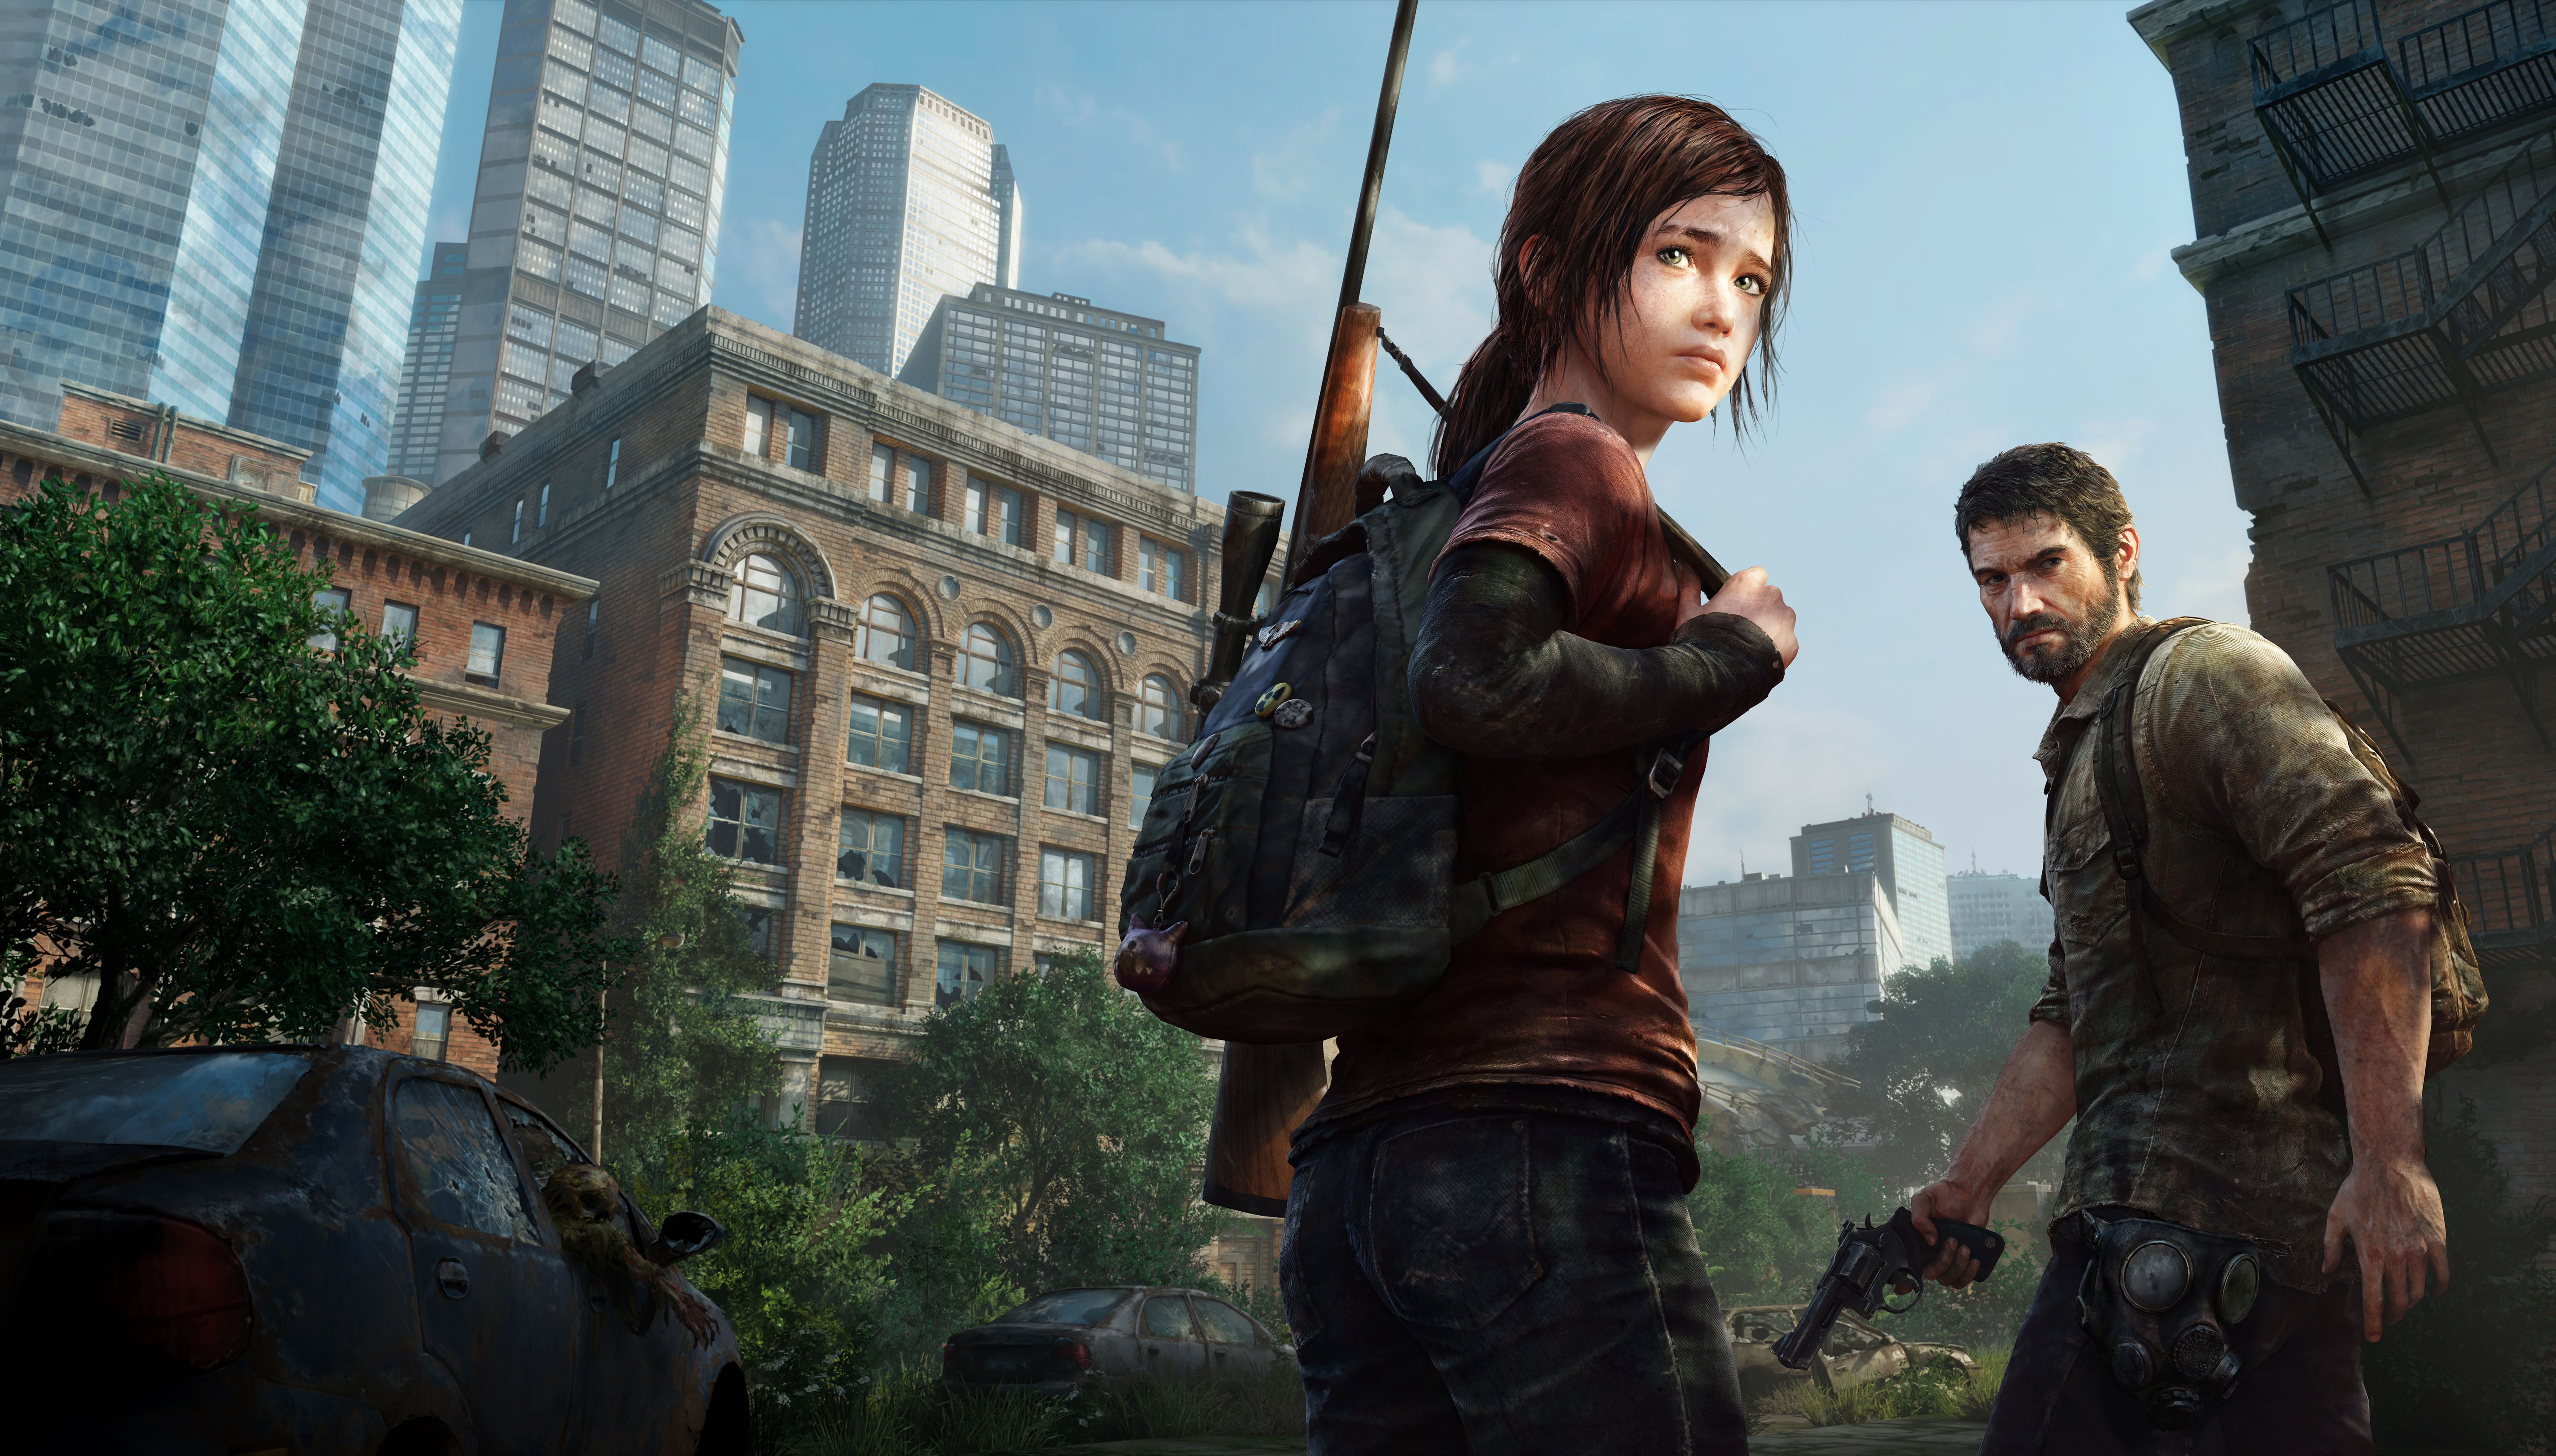 Fondo de pantalla de The Last of Us 6000x3418